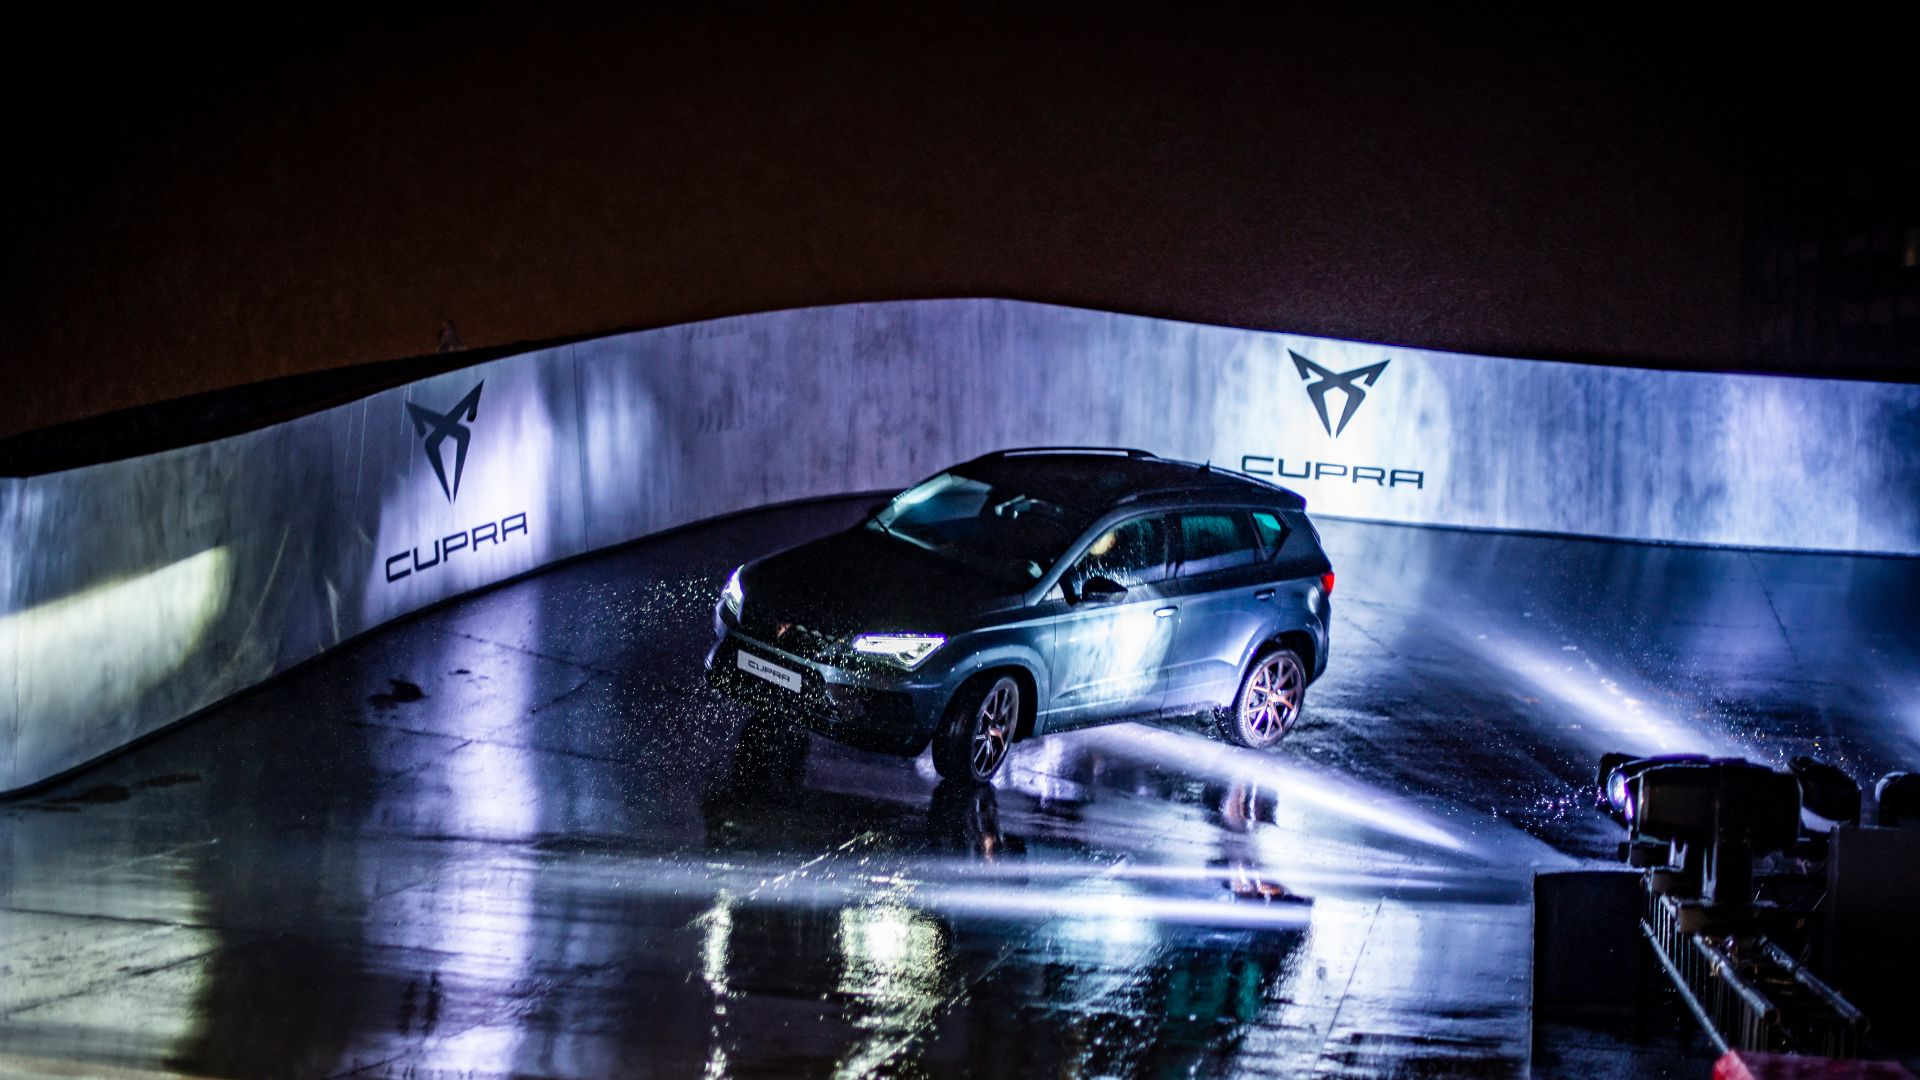 Cupra Ateca Paris rooftop racetrack